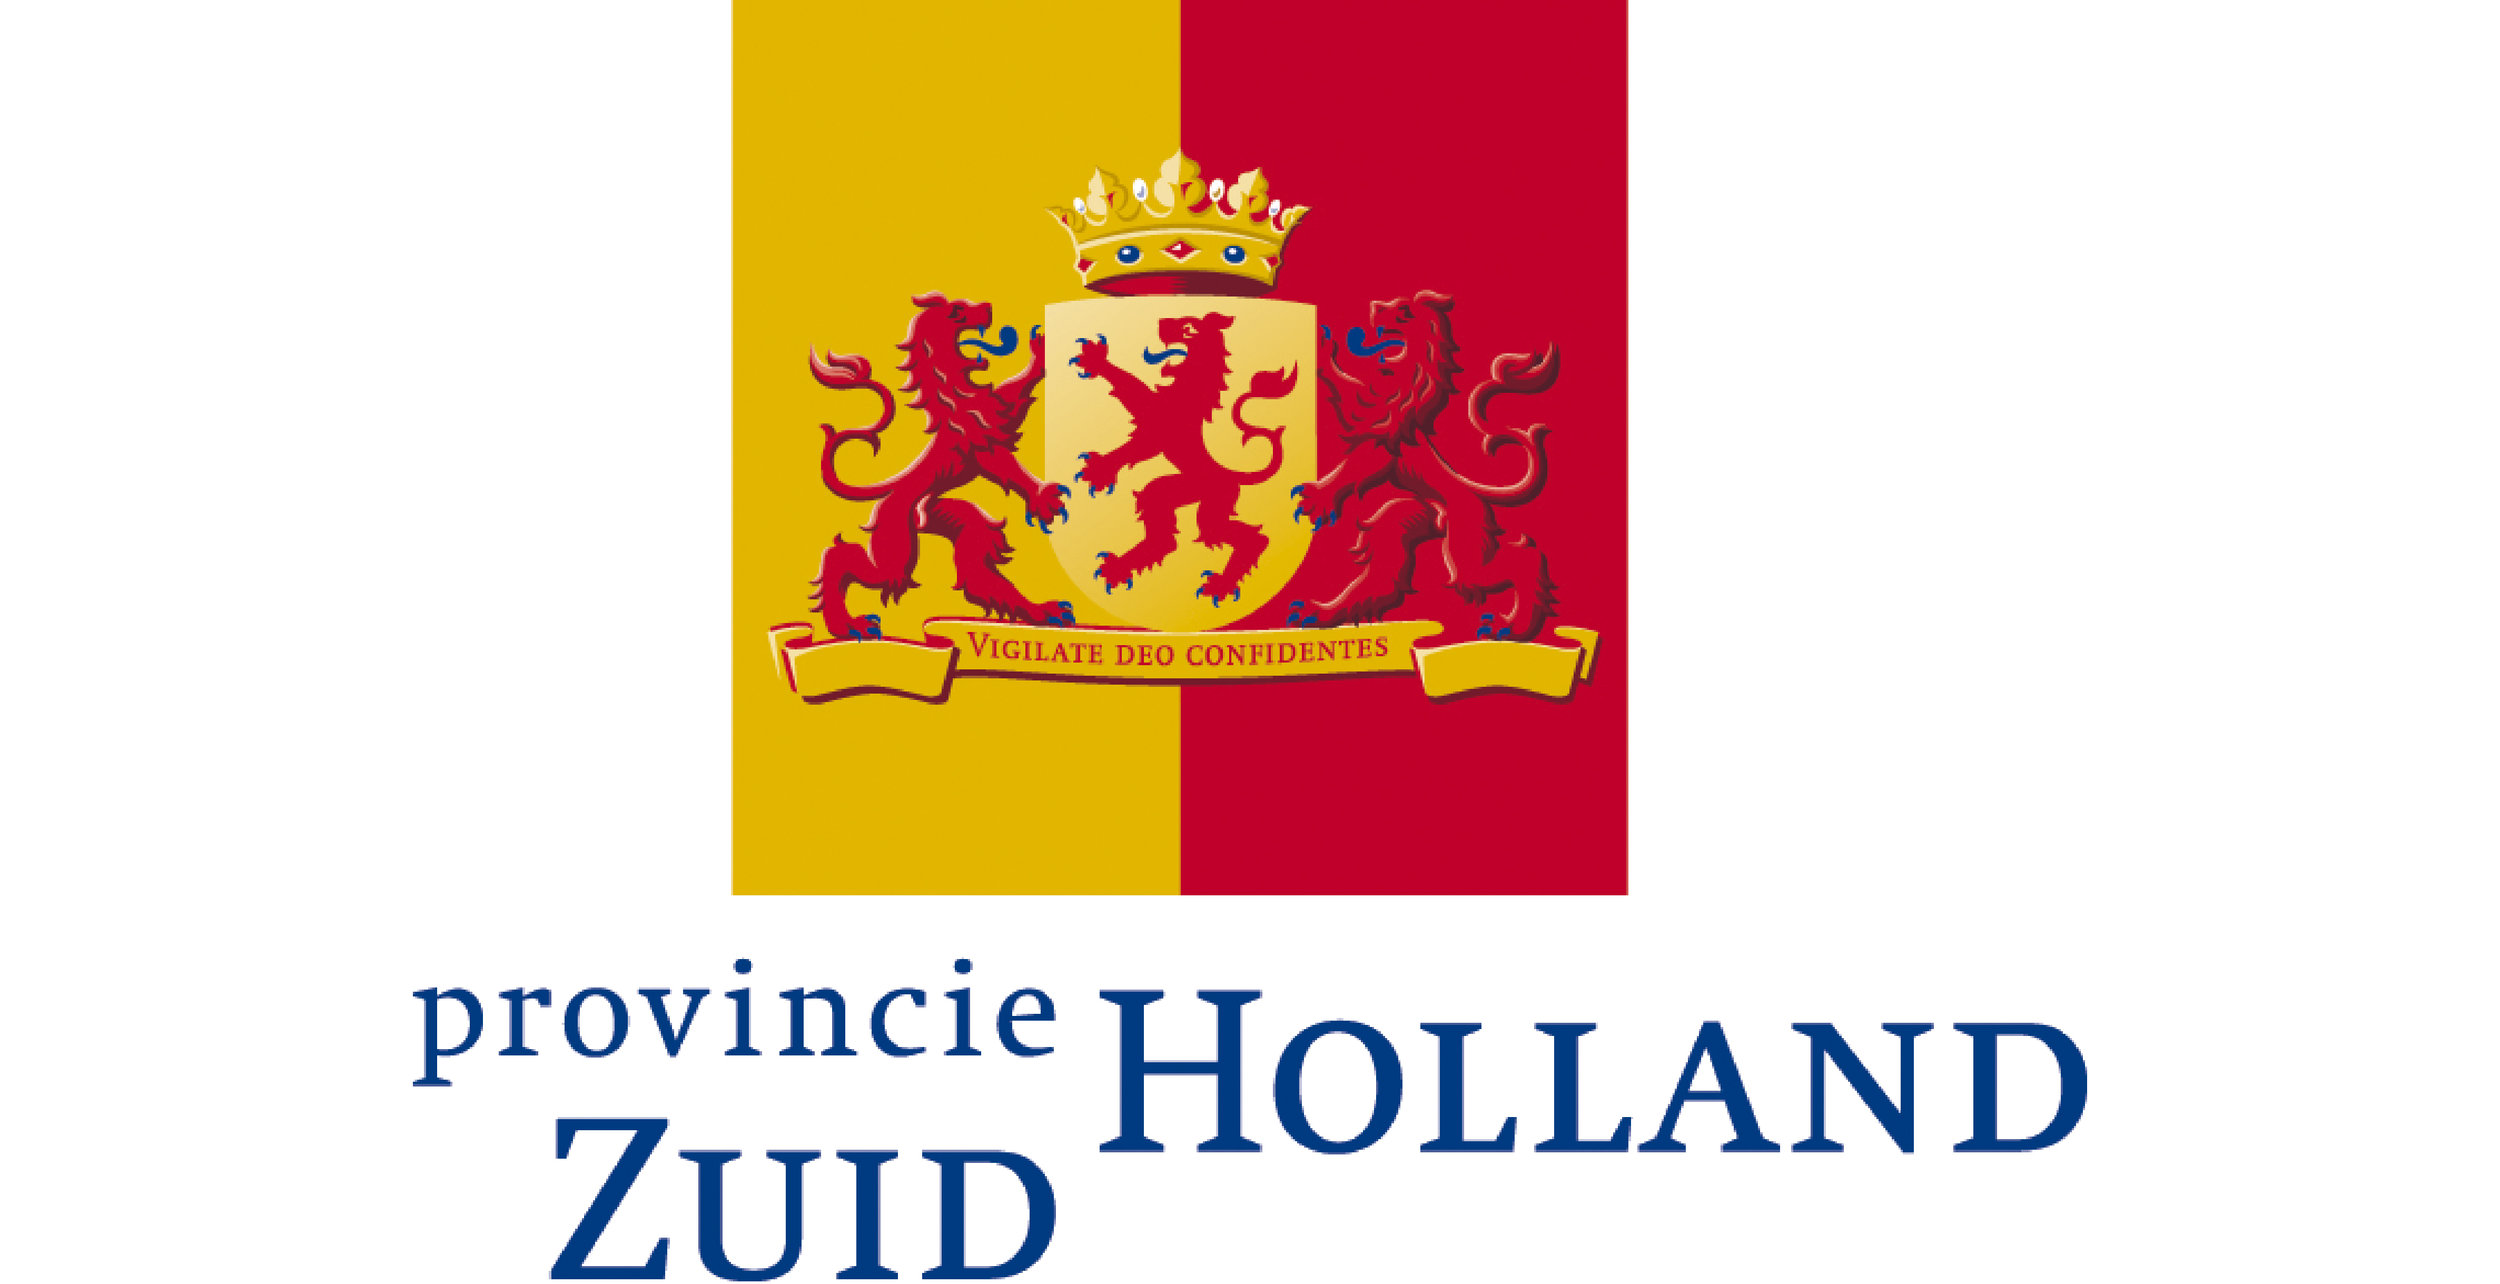 zuid holland.jpg